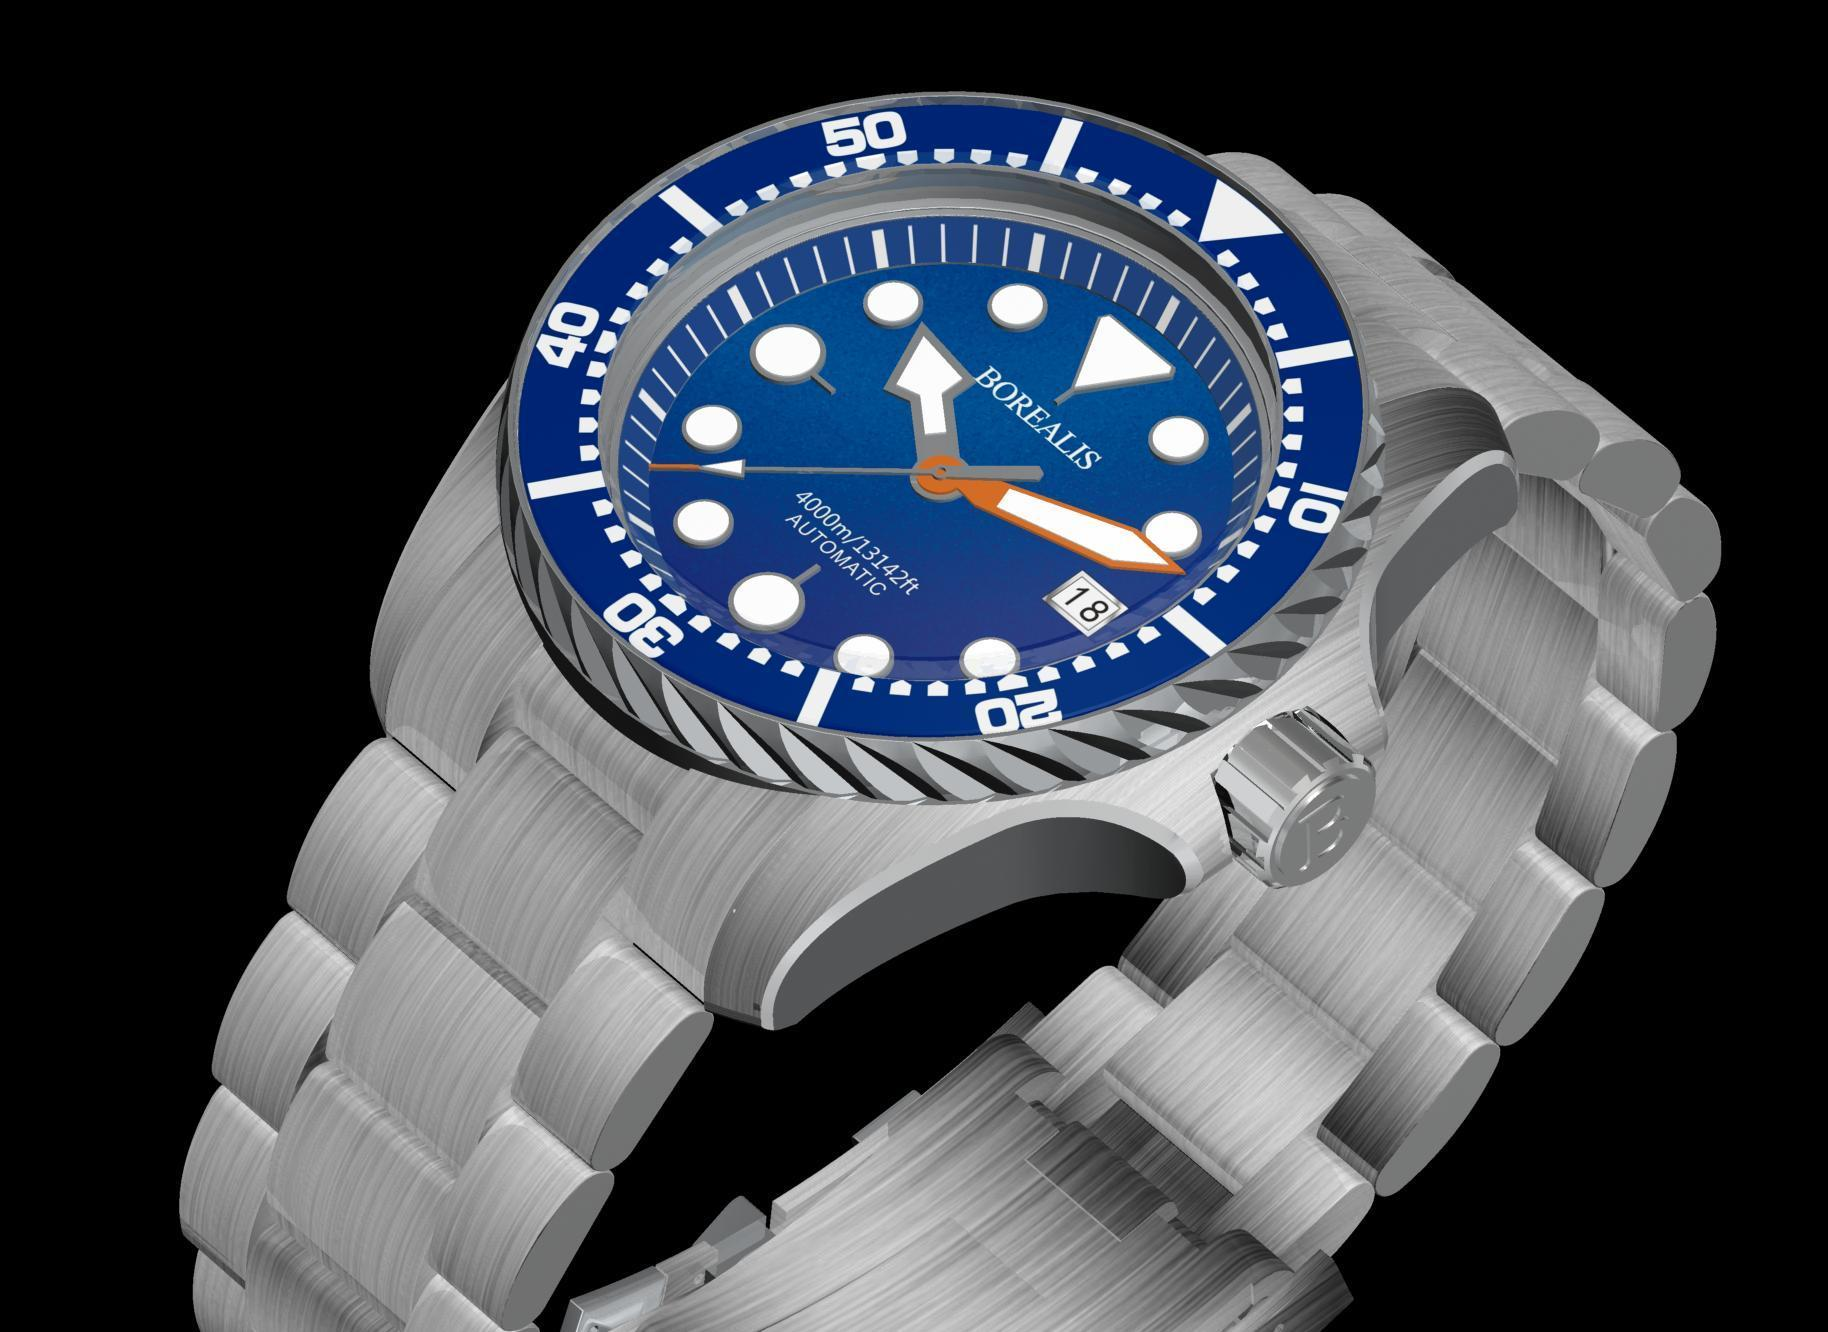 Borealis Seafarer II Stainless Steel Blue BGW9 Sapphire Turbine Style Grip Bezel 4000m Miyota 9015 Automatic Diver Watch